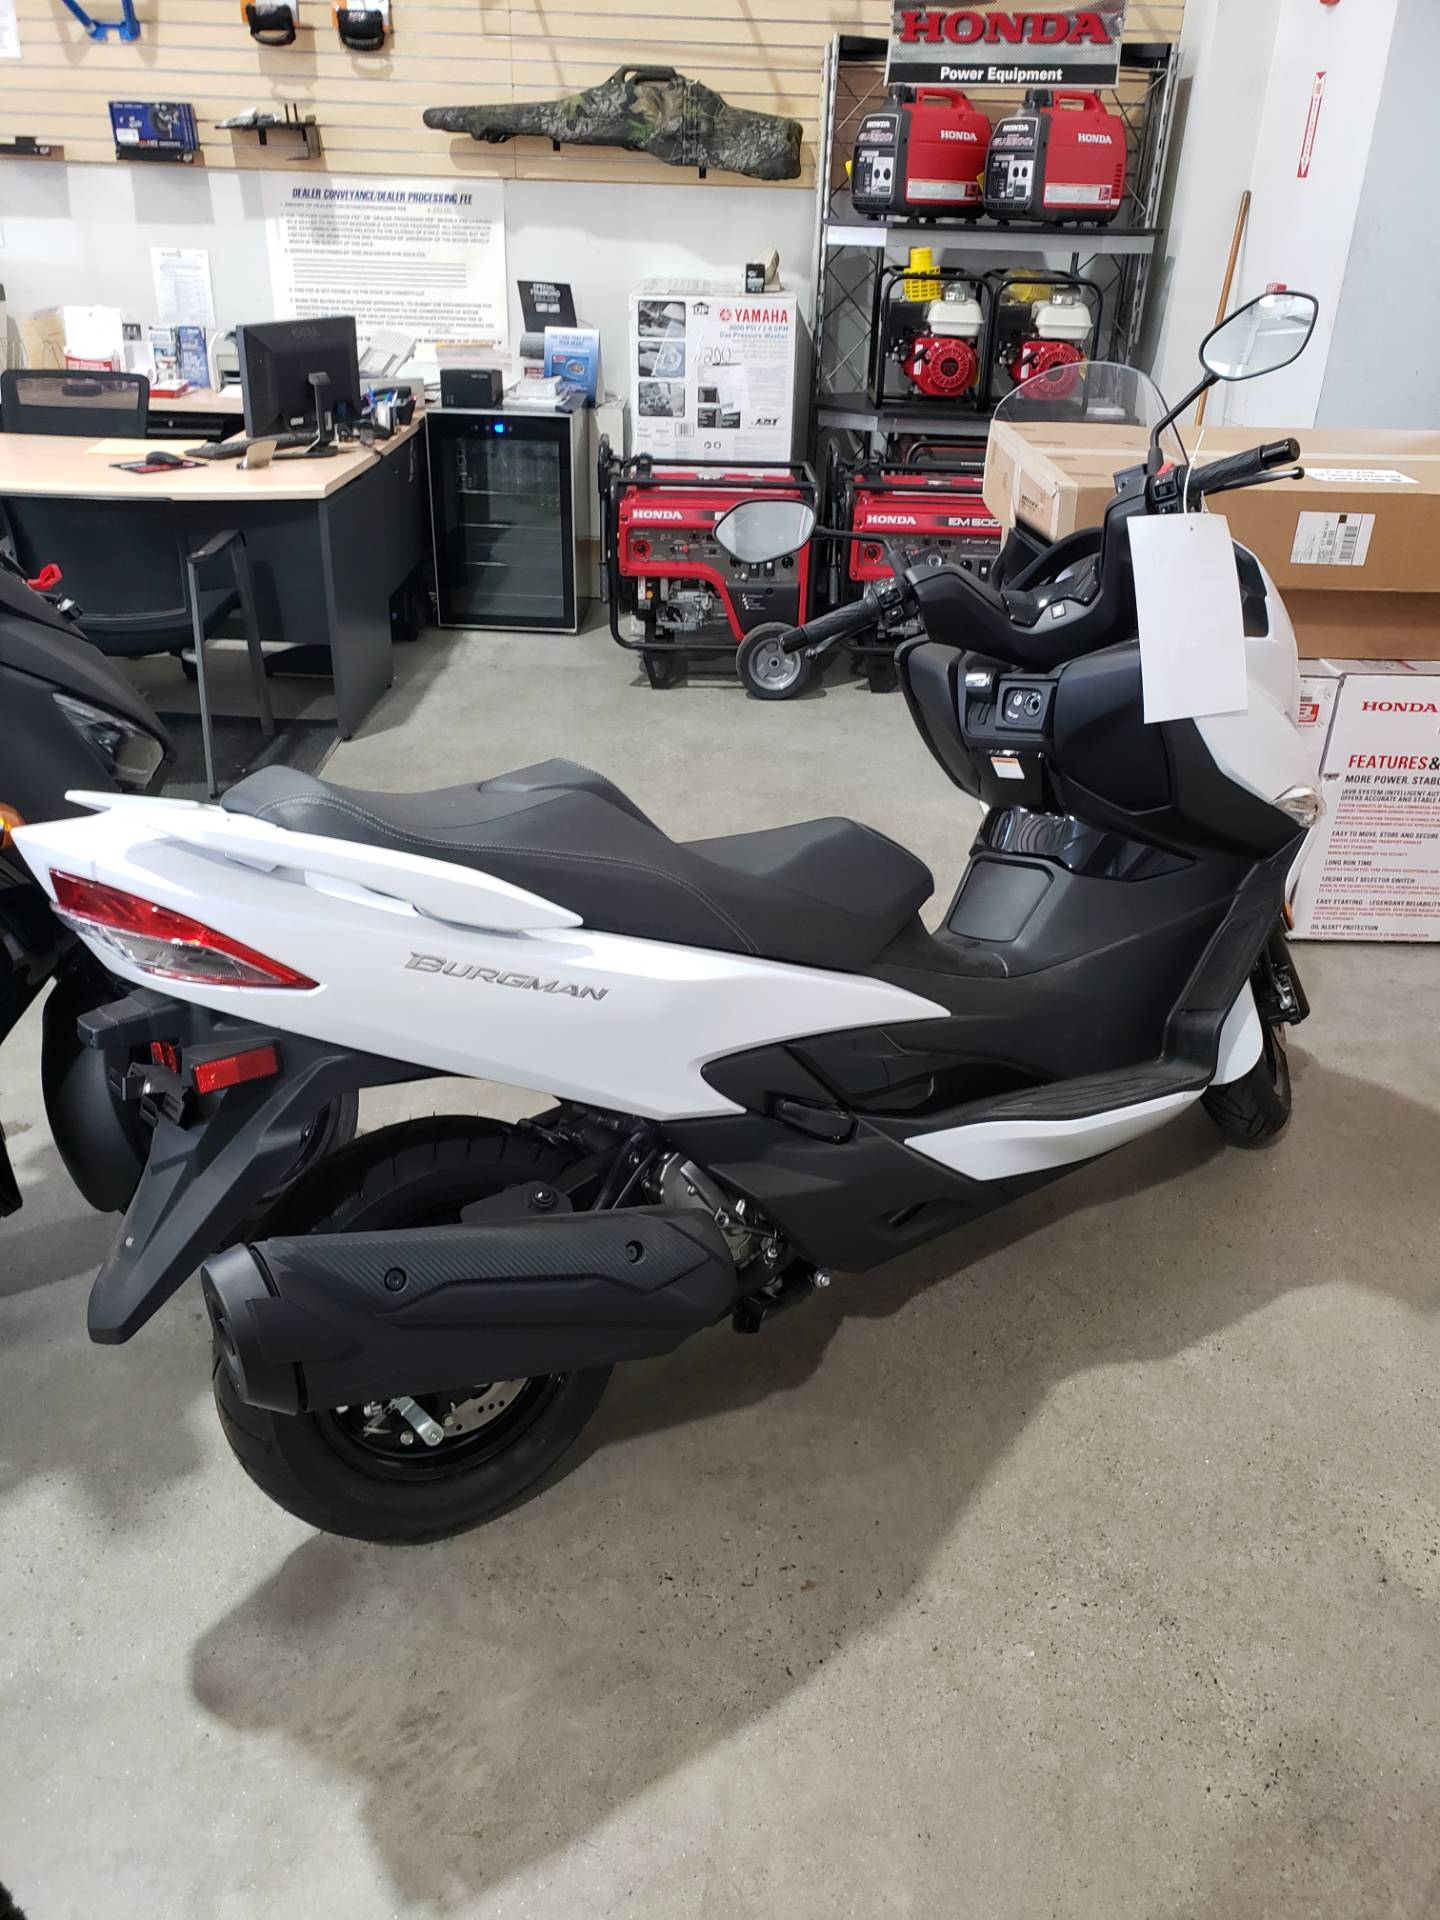 2018 Suzuki Burgman 400 ABS in Danbury, Connecticut - Photo 2